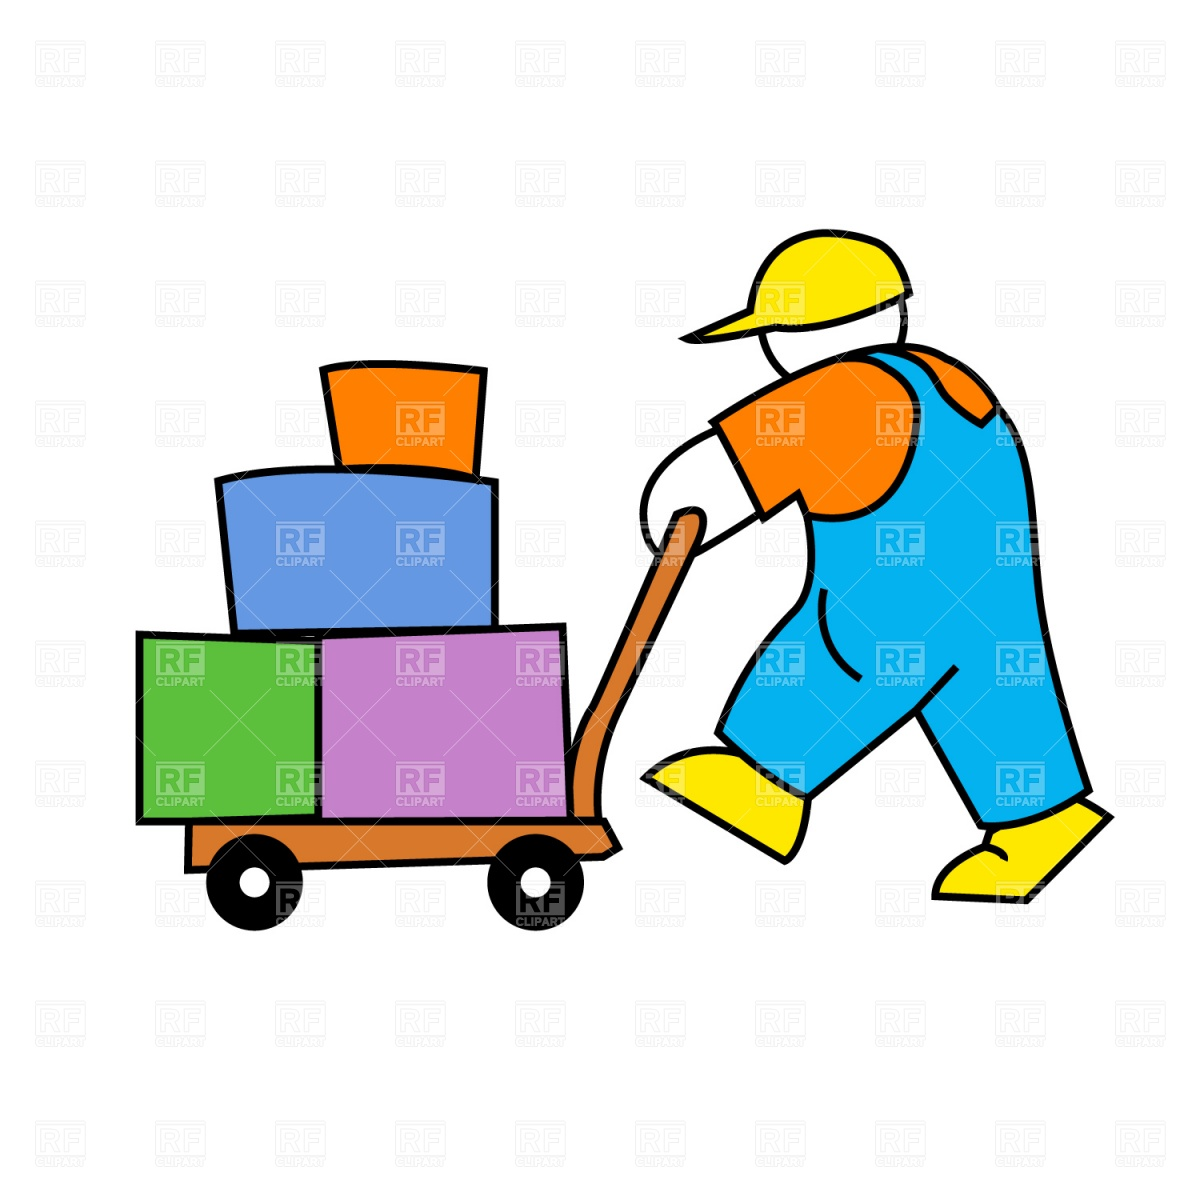 Factory clipart factory worker Worker Factory Clipart Clip Worker